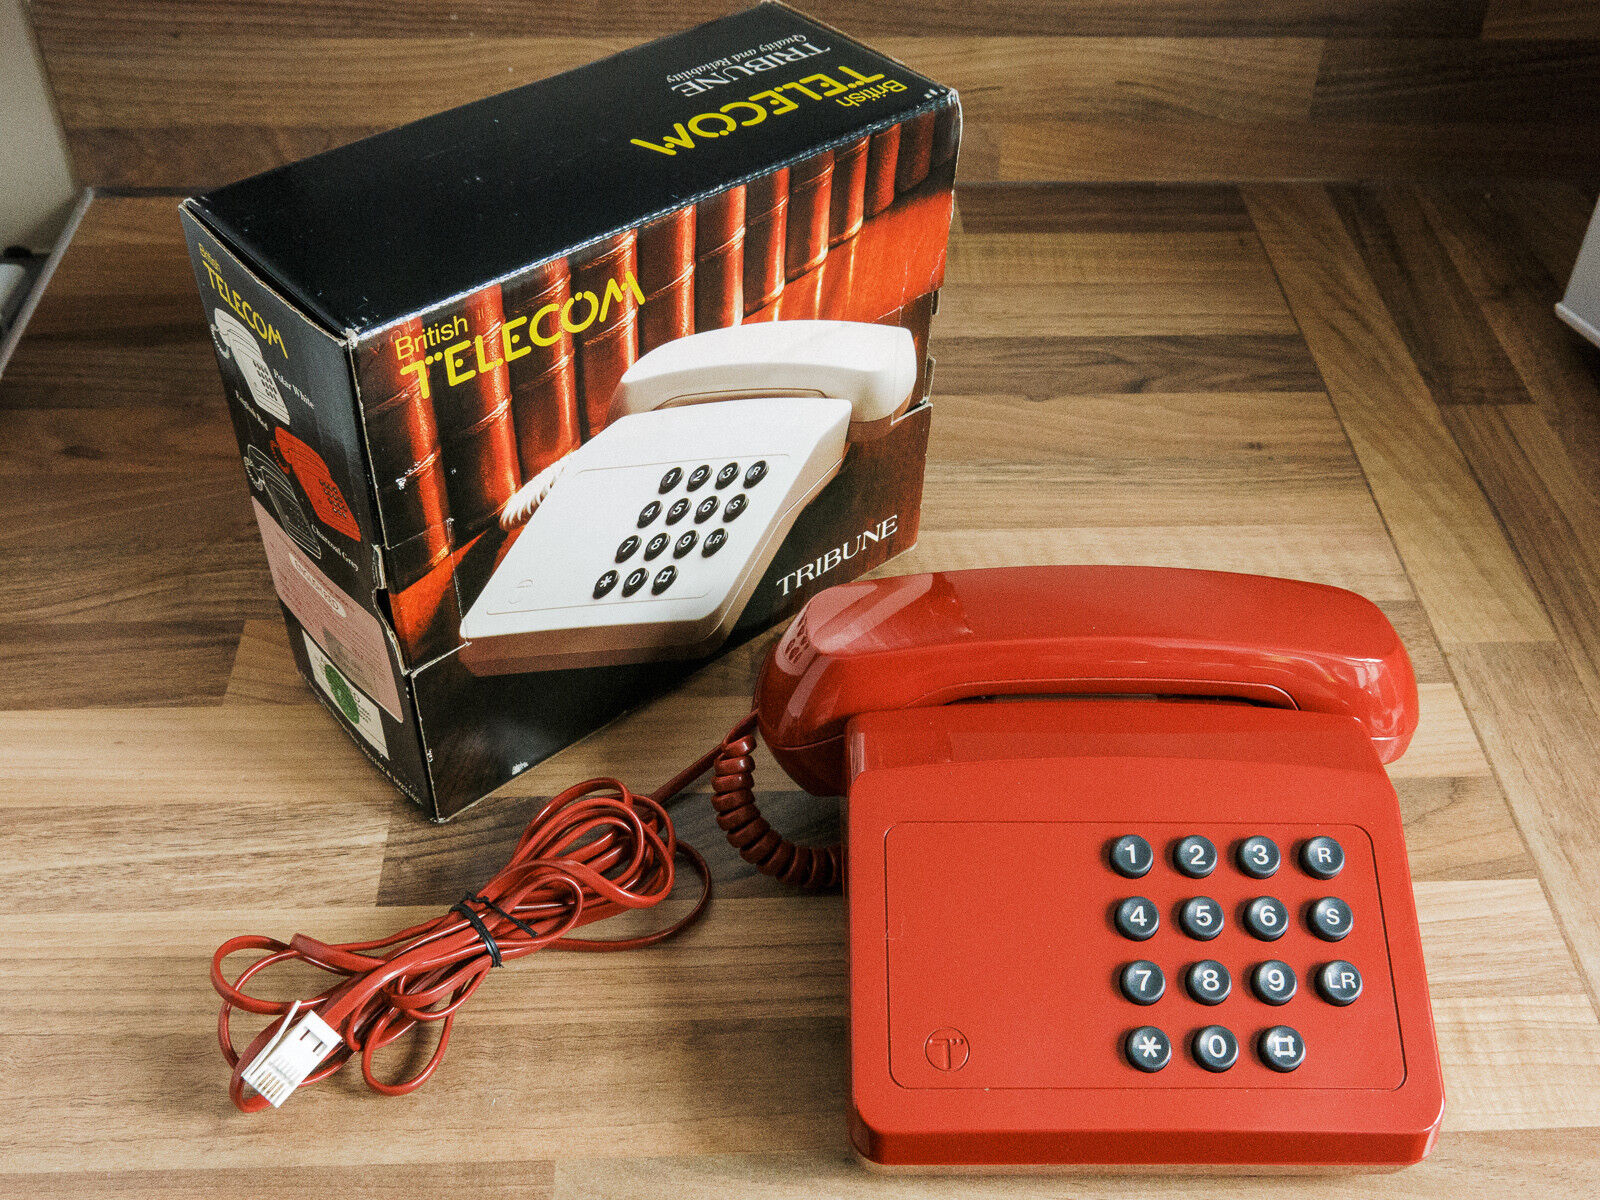 Vintage GPO BT British Telecom Tribune Telephone 1980s Boxed phone Red